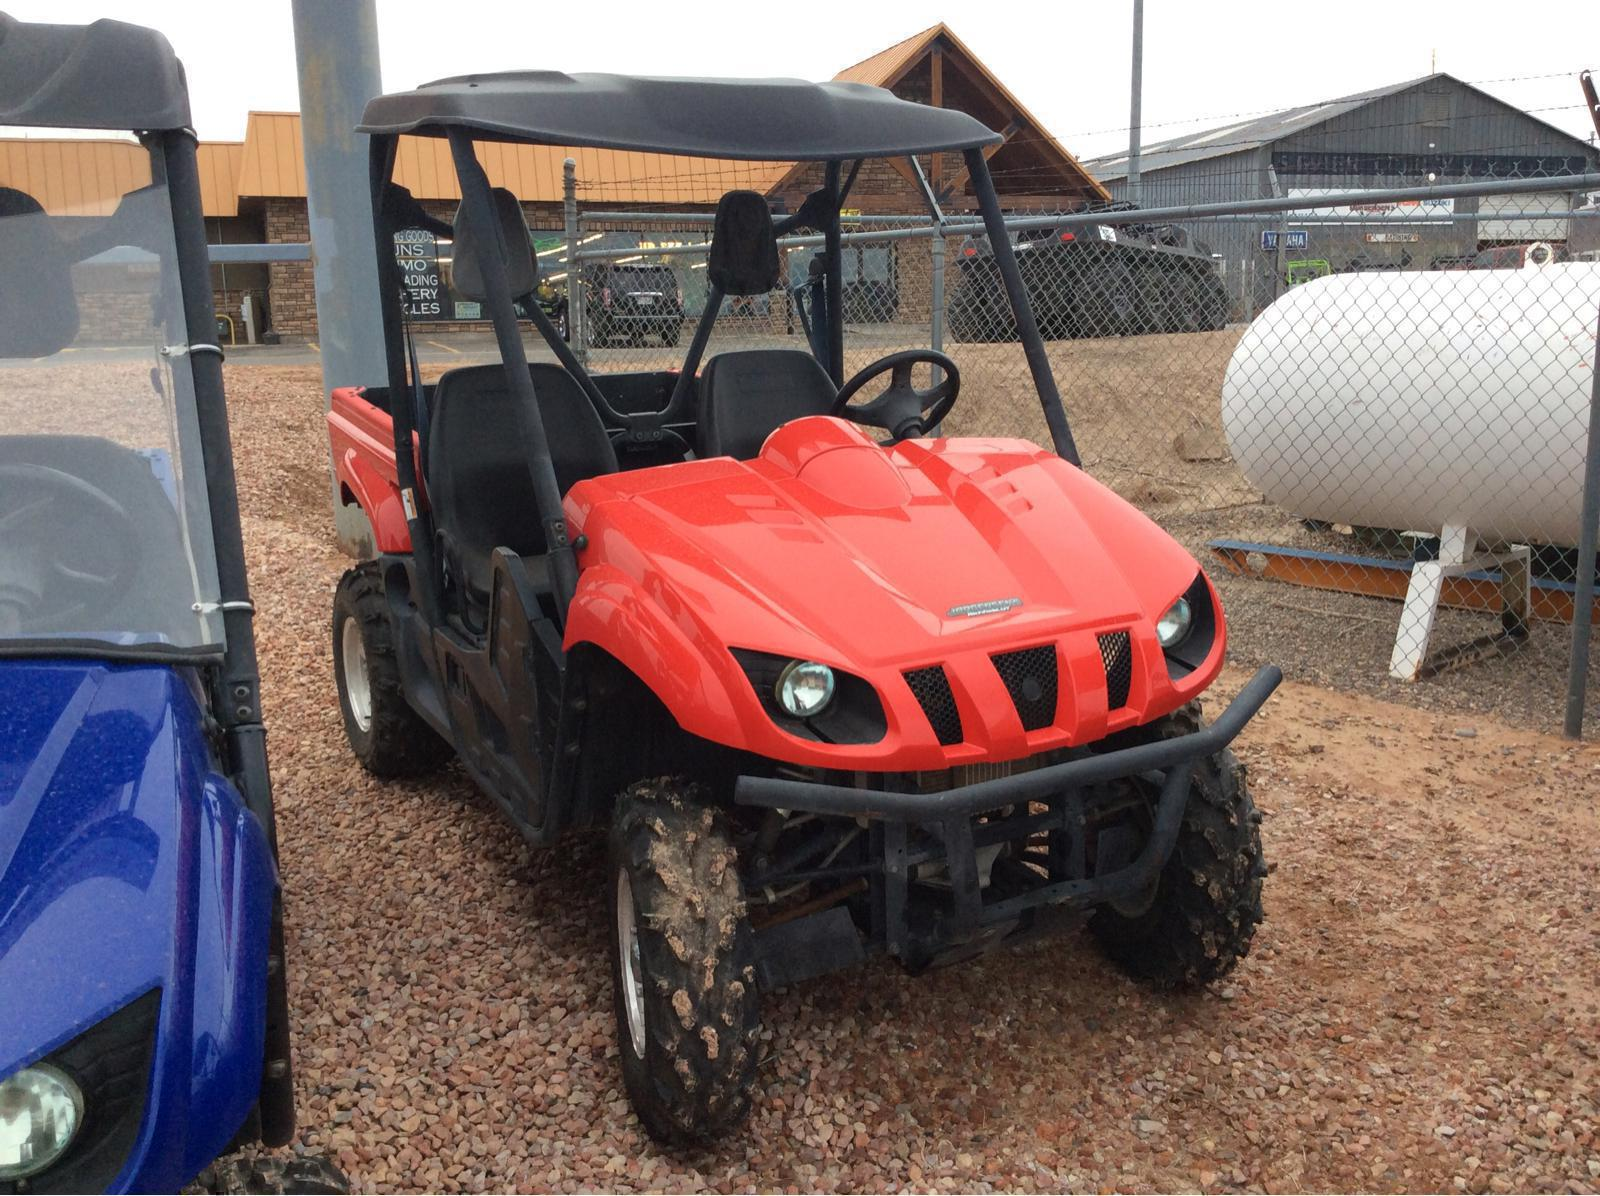 2007 Yamaha Rhino 660 4wd Sport For Sale In Richfield Ut Fuel Filter Previous